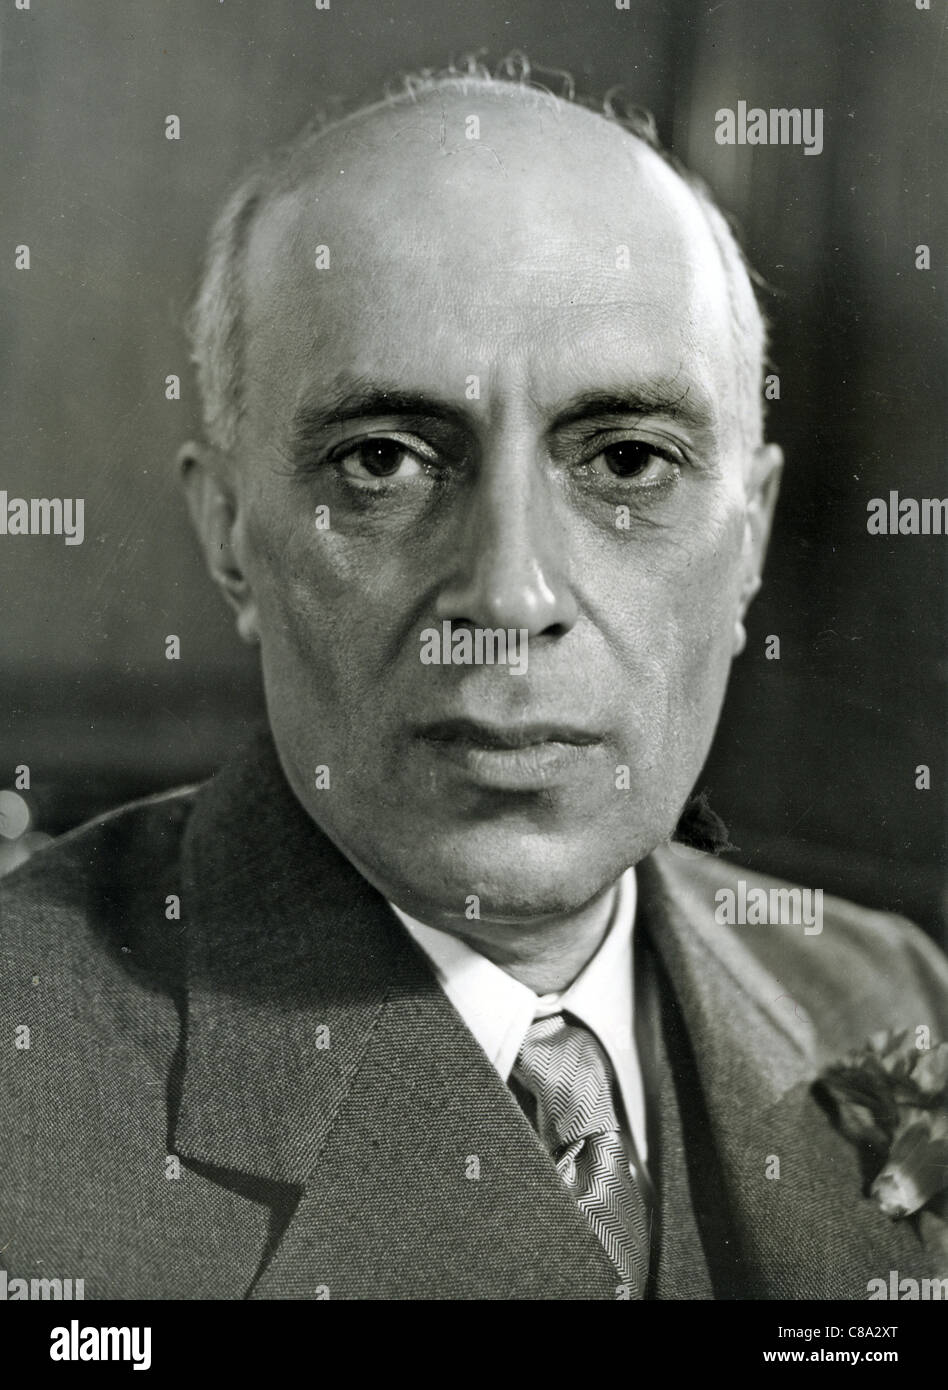 PANDIT JAWAHARLAL NEHRU (1889-1964)  Prime Minister of India about 1950 - Stock Image